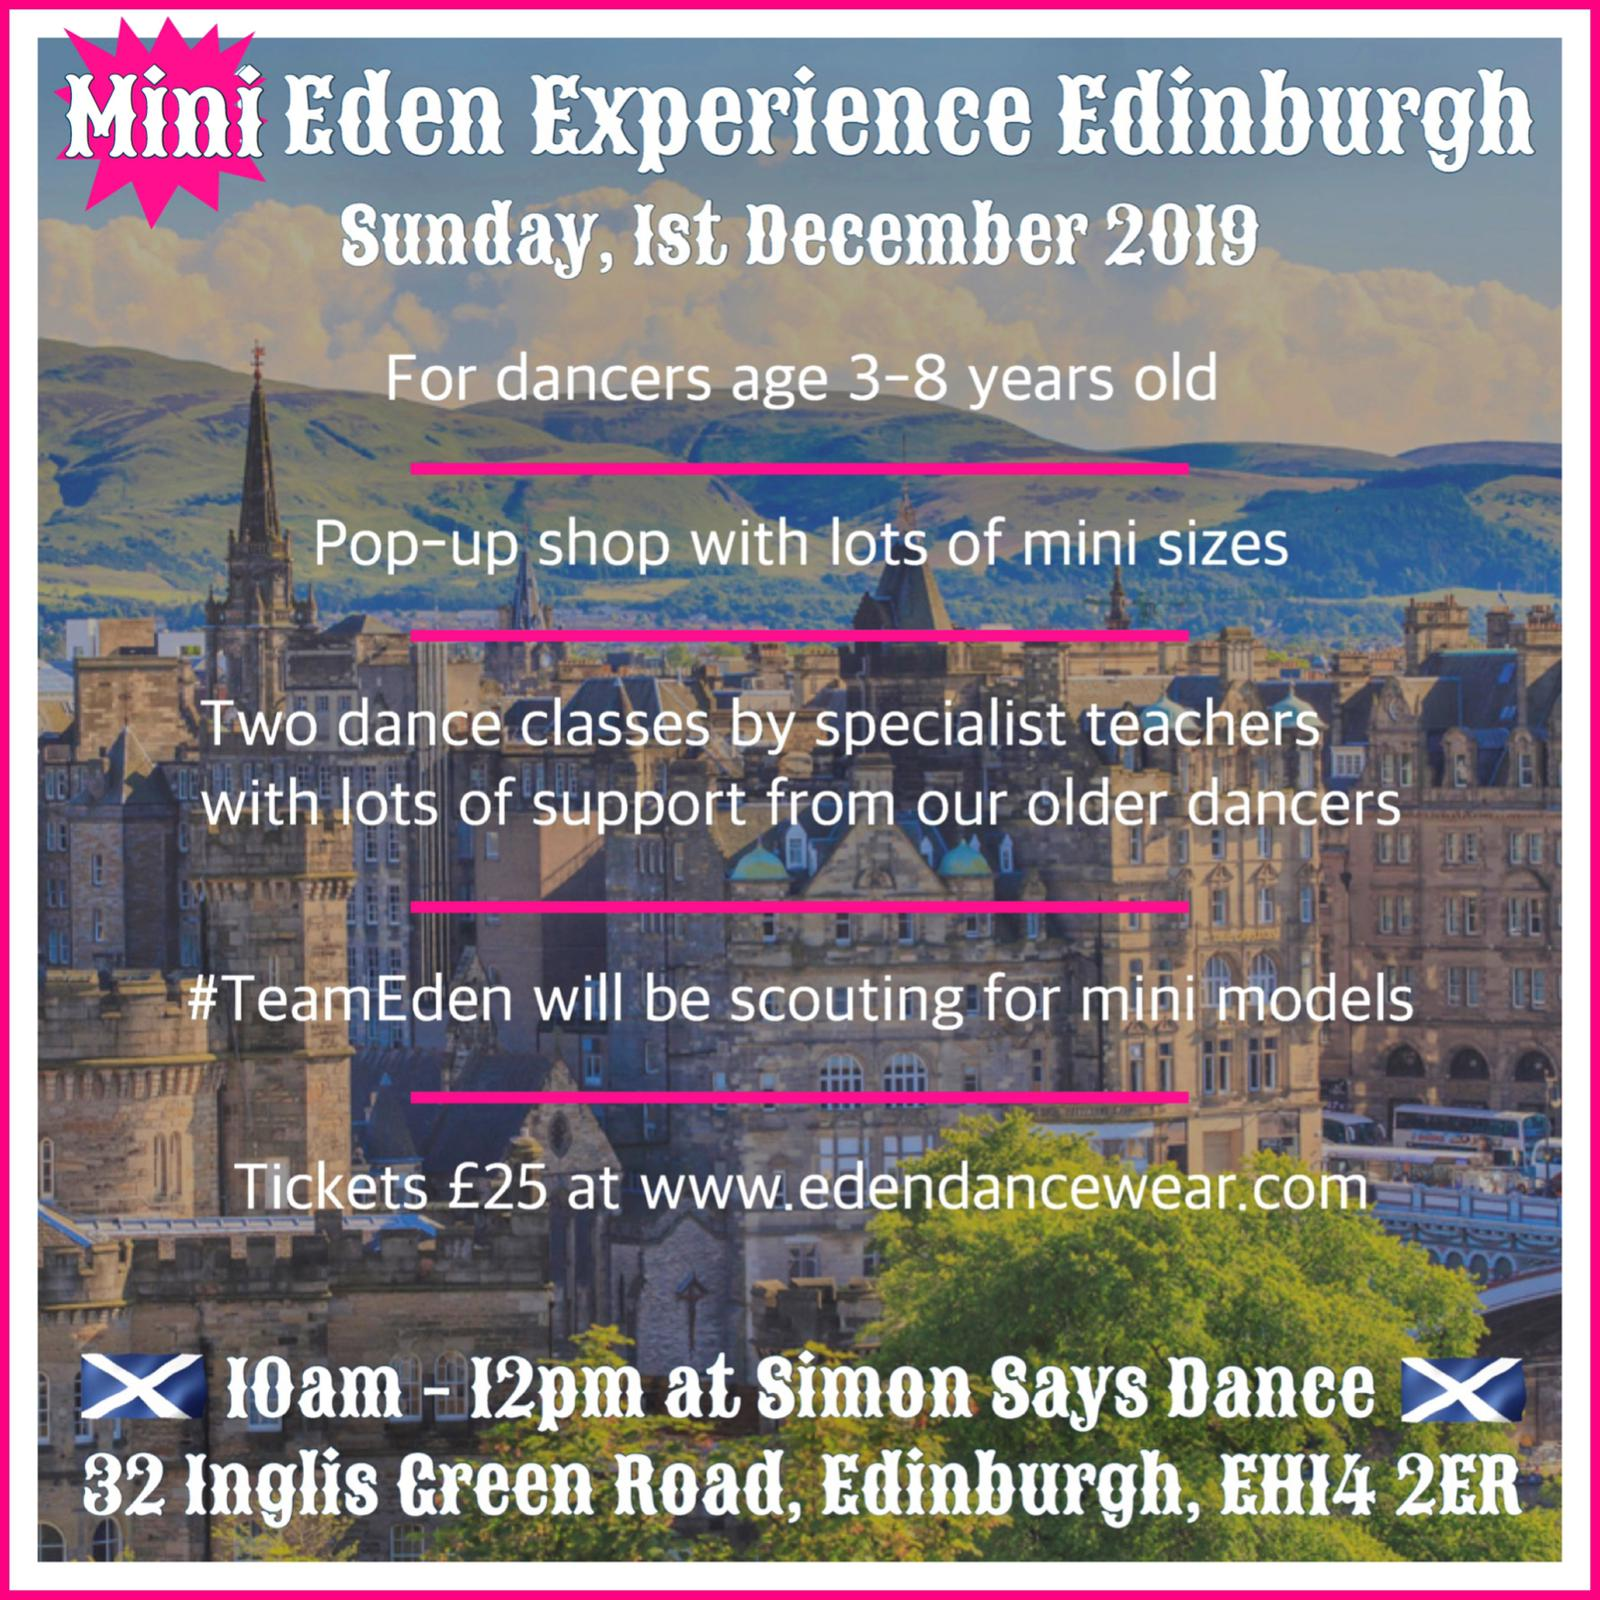 The Mini Edinburgh Eden Experience